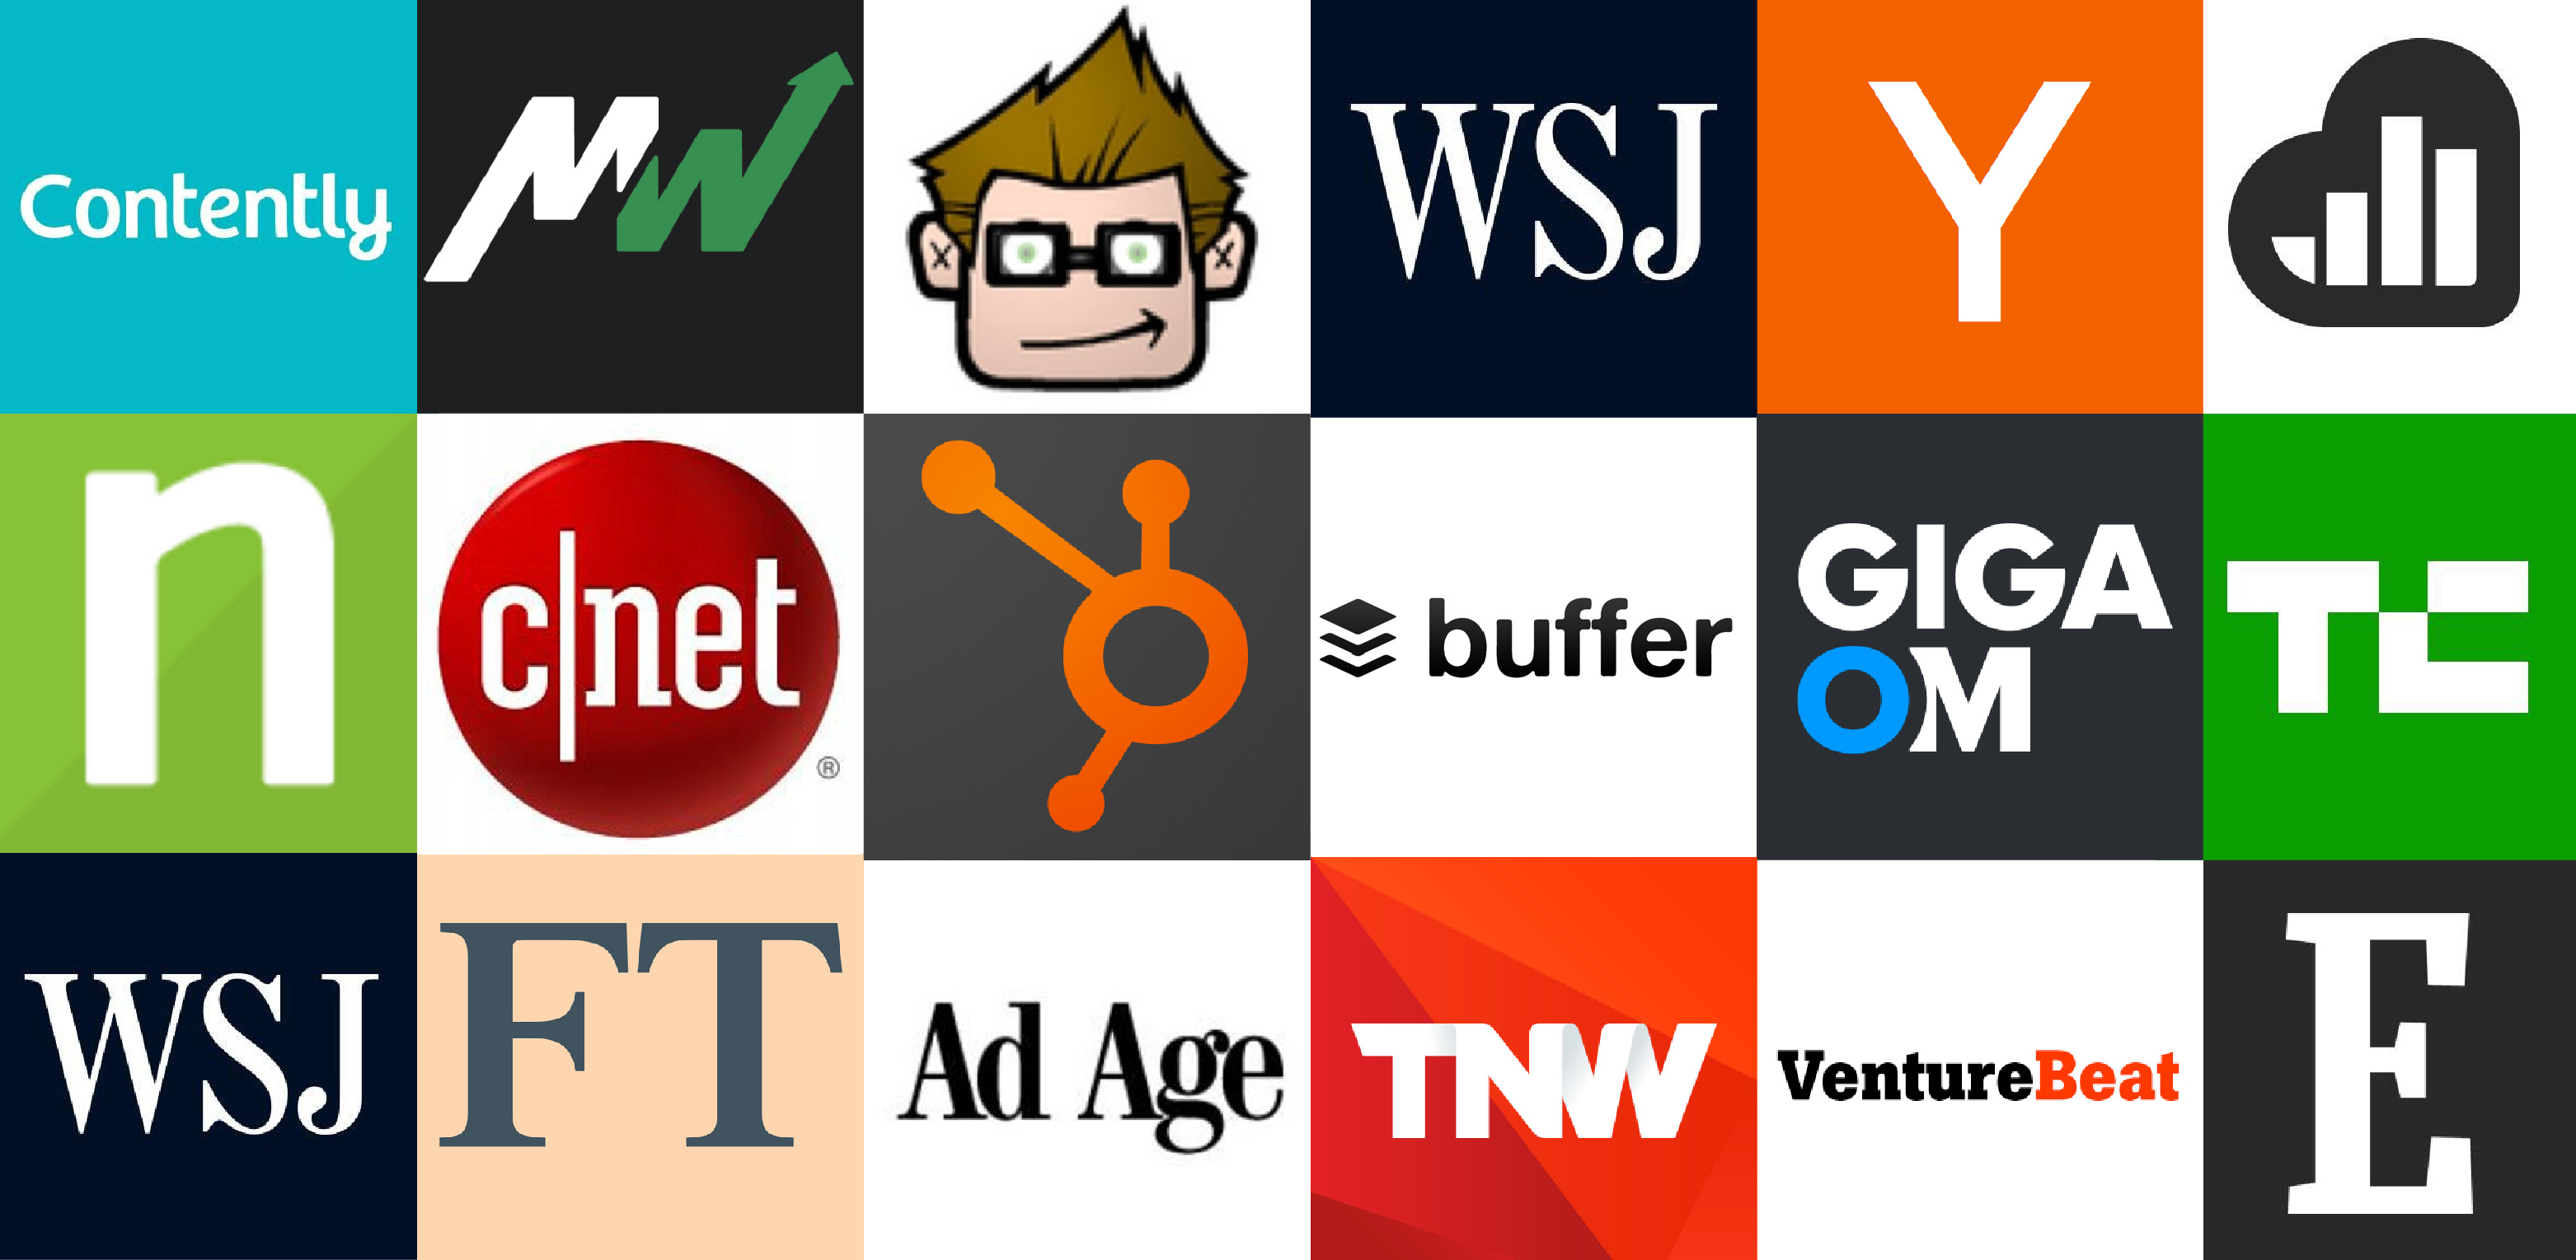 51 Best Tech Websites and Business Publications - The Muse